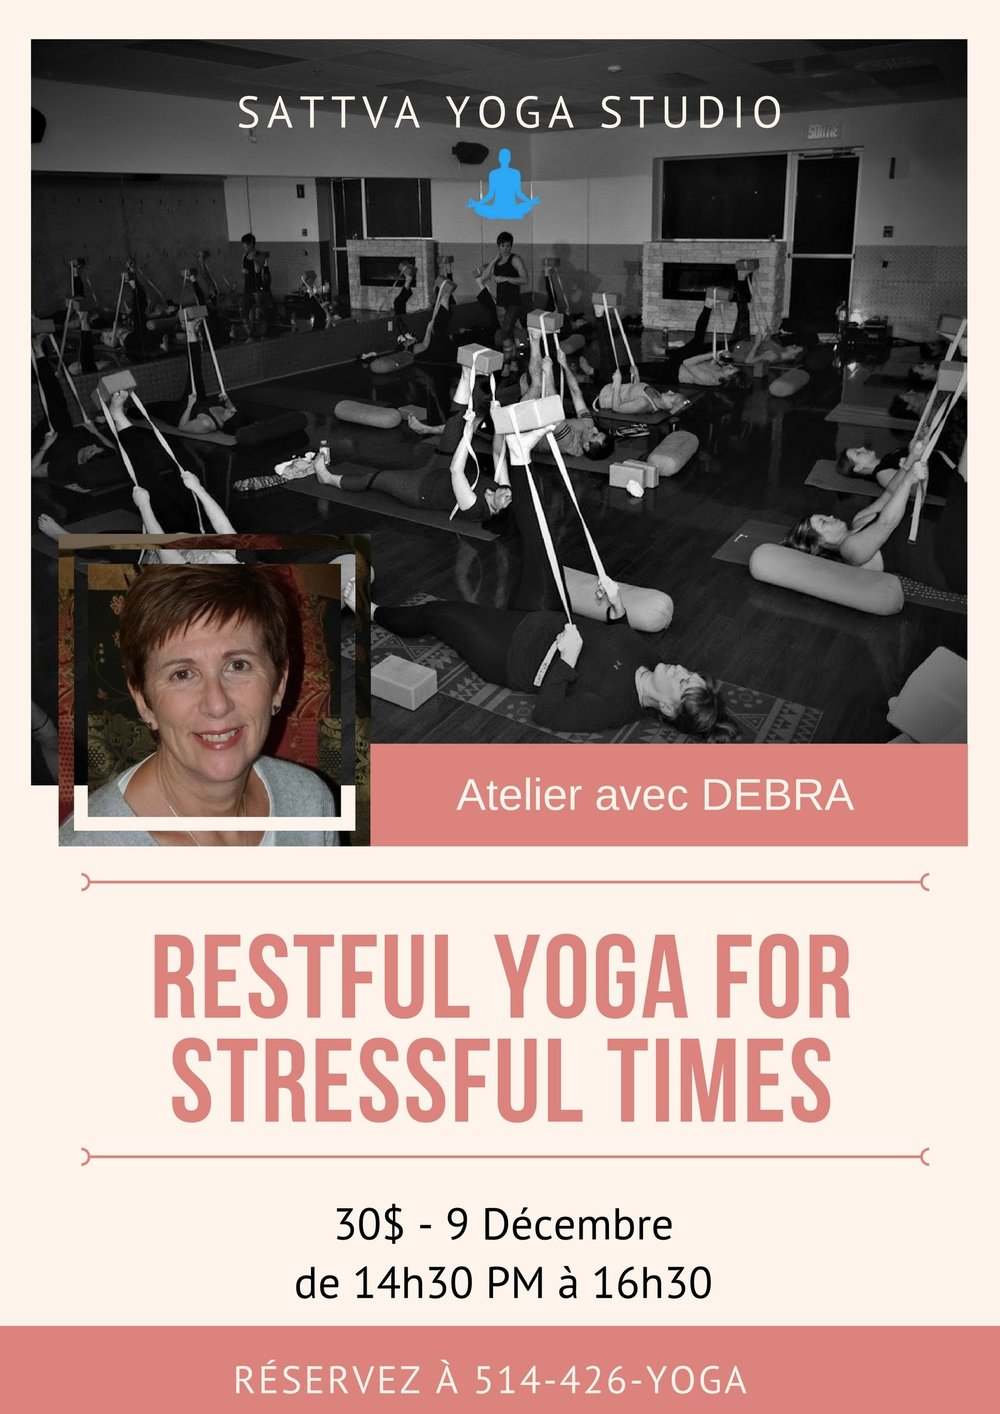 restful yoga for stressful times